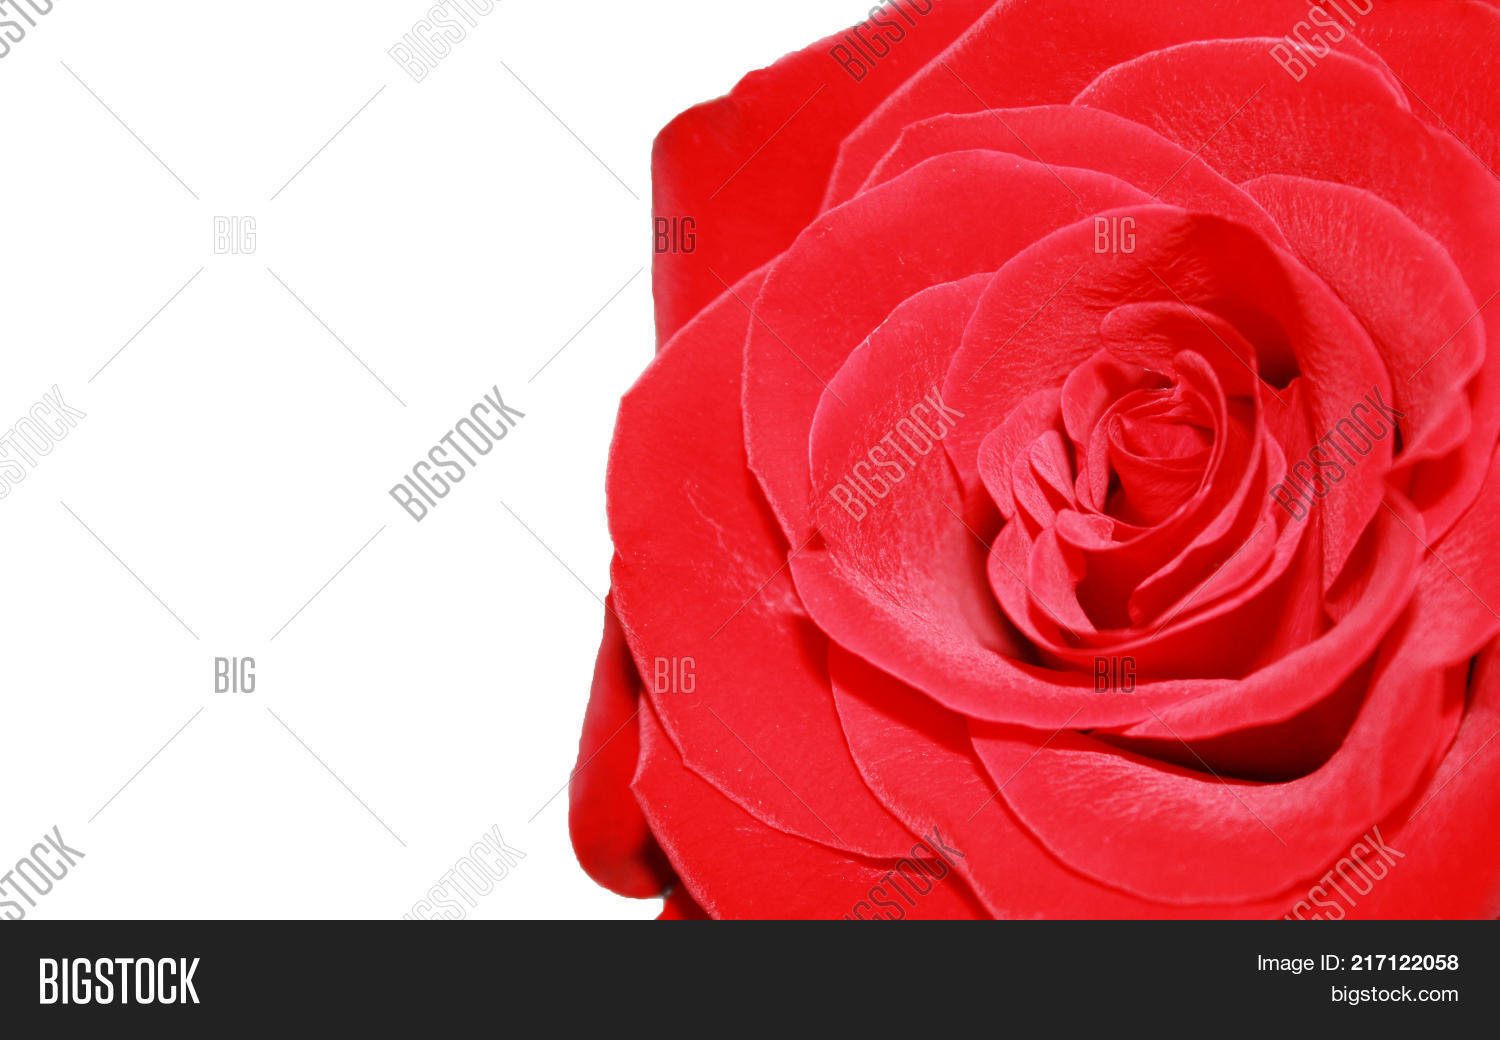 Rose Flower Petals Image & Photo (Free Trial) | Bigstock